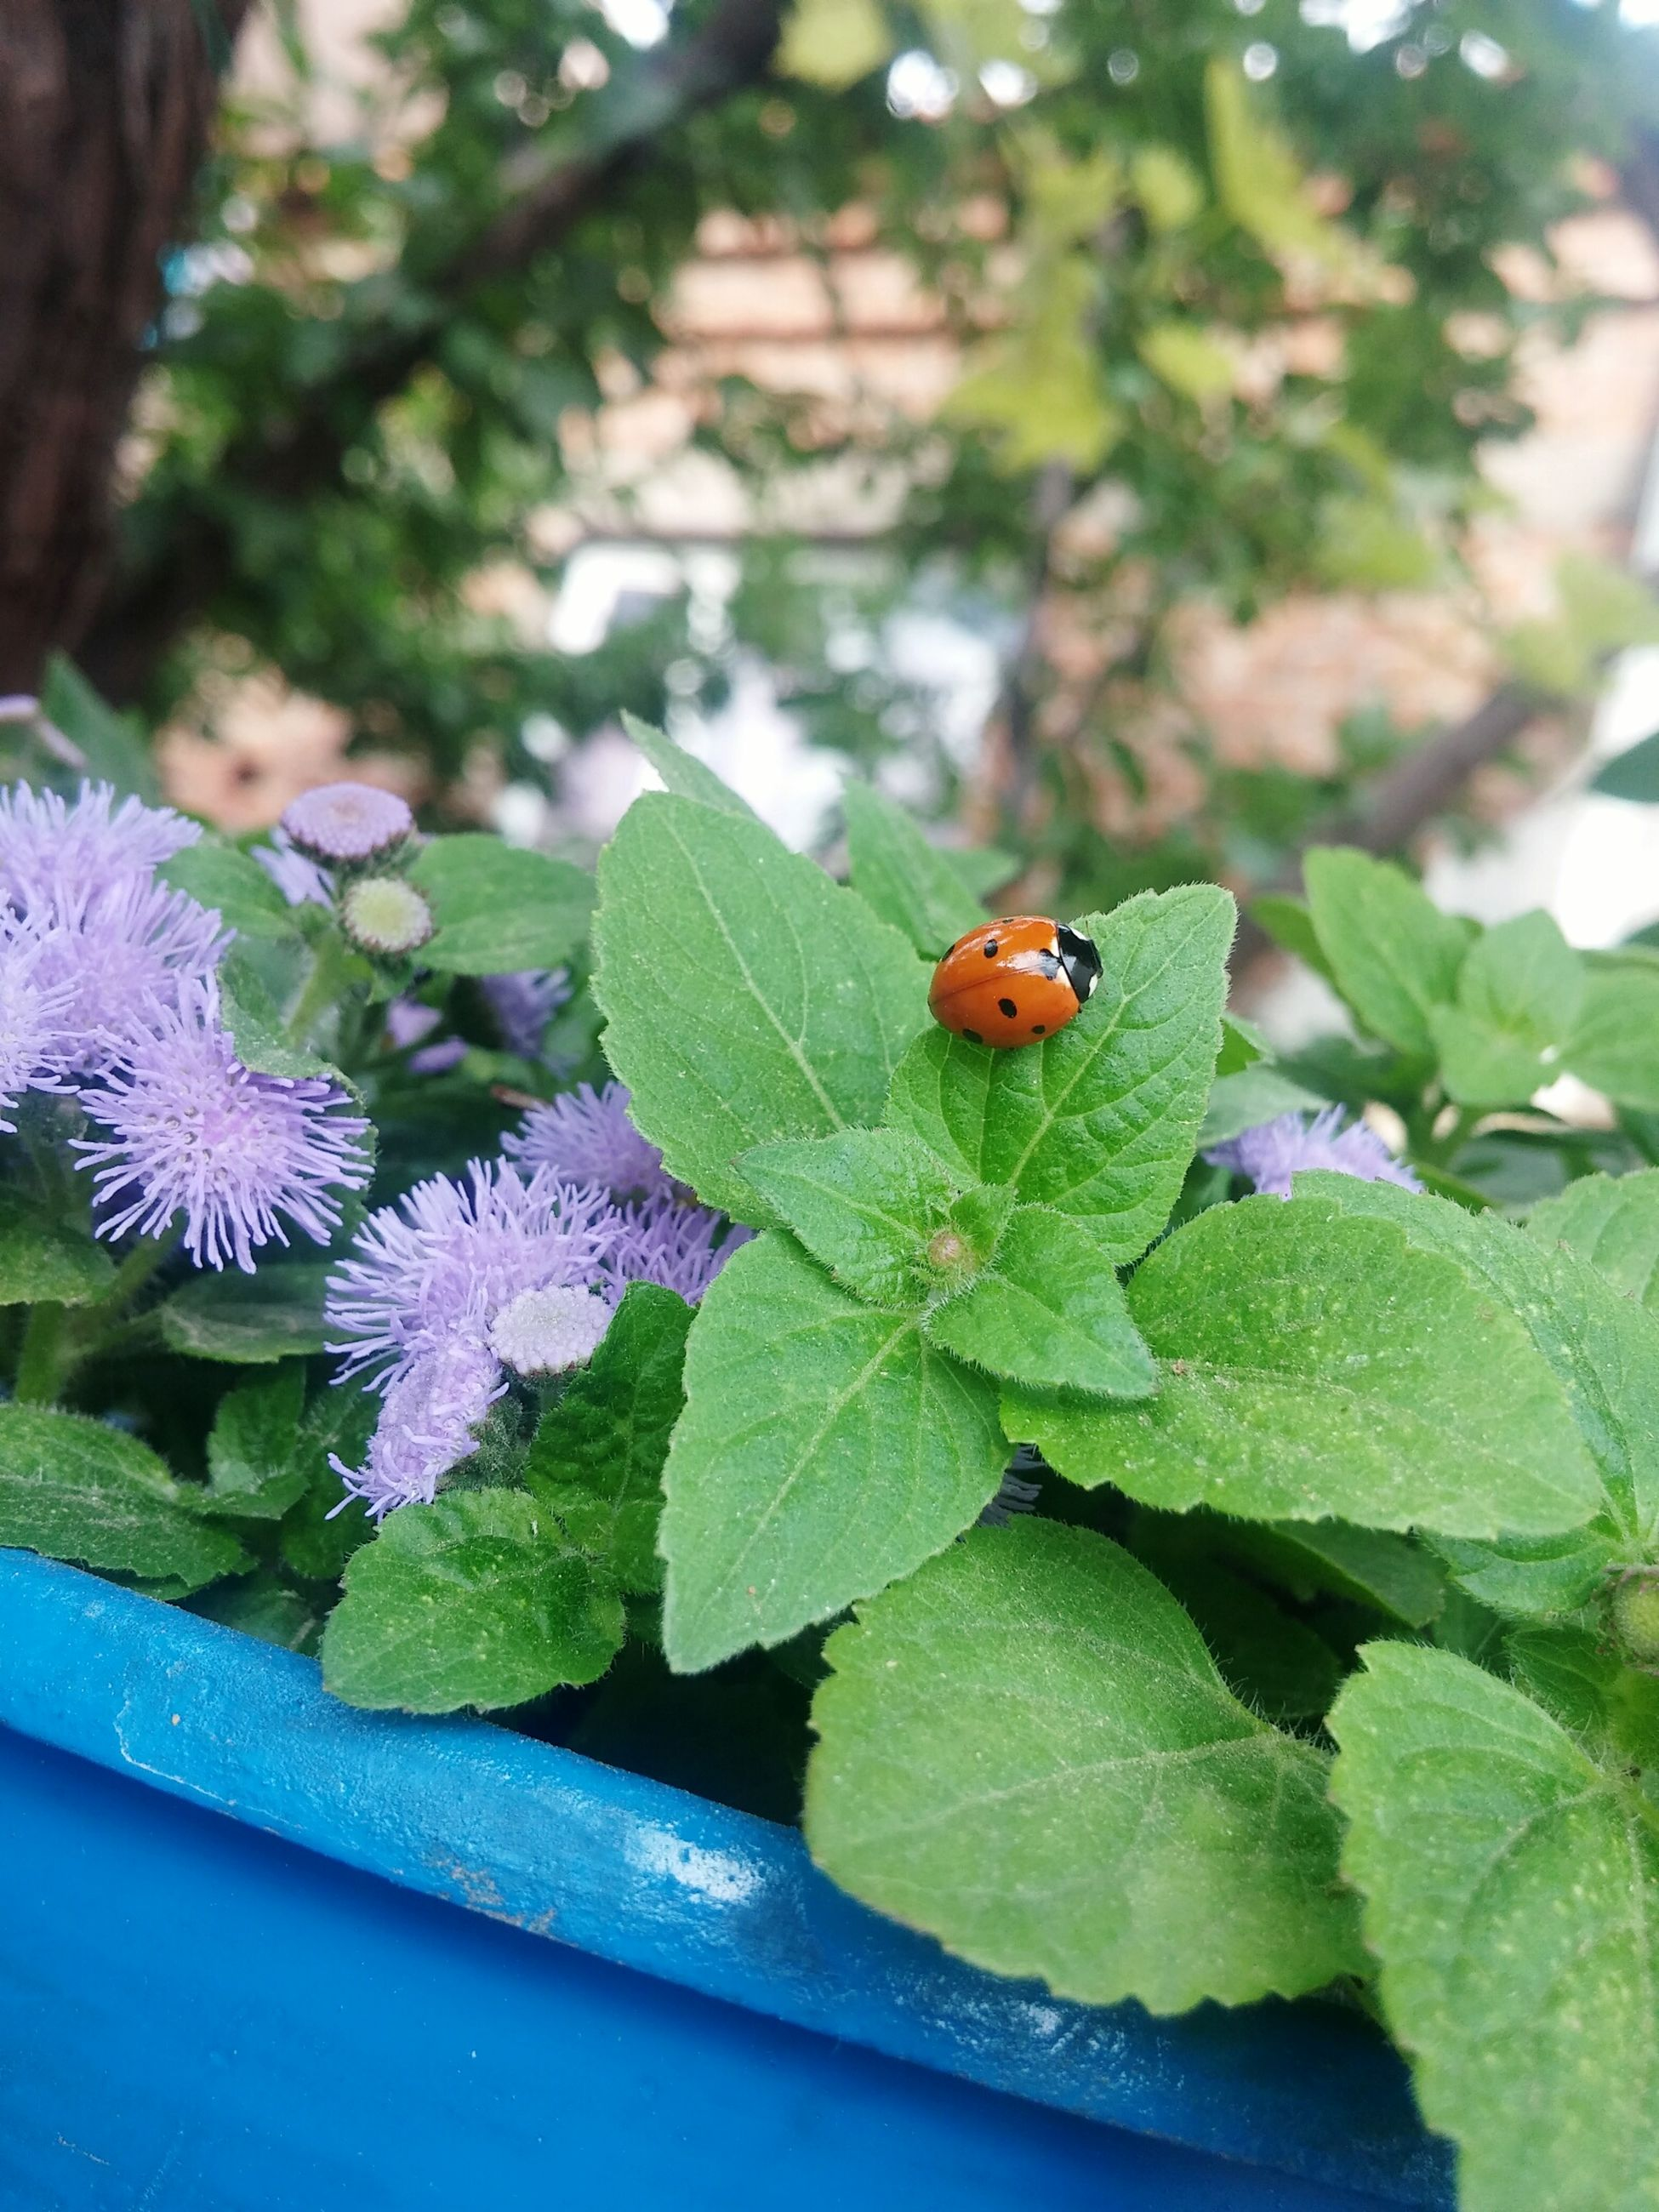 leaf, plant, growth, insect, one animal, green color, nature, animal themes, animals in the wild, no people, day, flower, outdoors, fragility, close-up, beauty in nature, freshness, flower head, tiny, ladybug